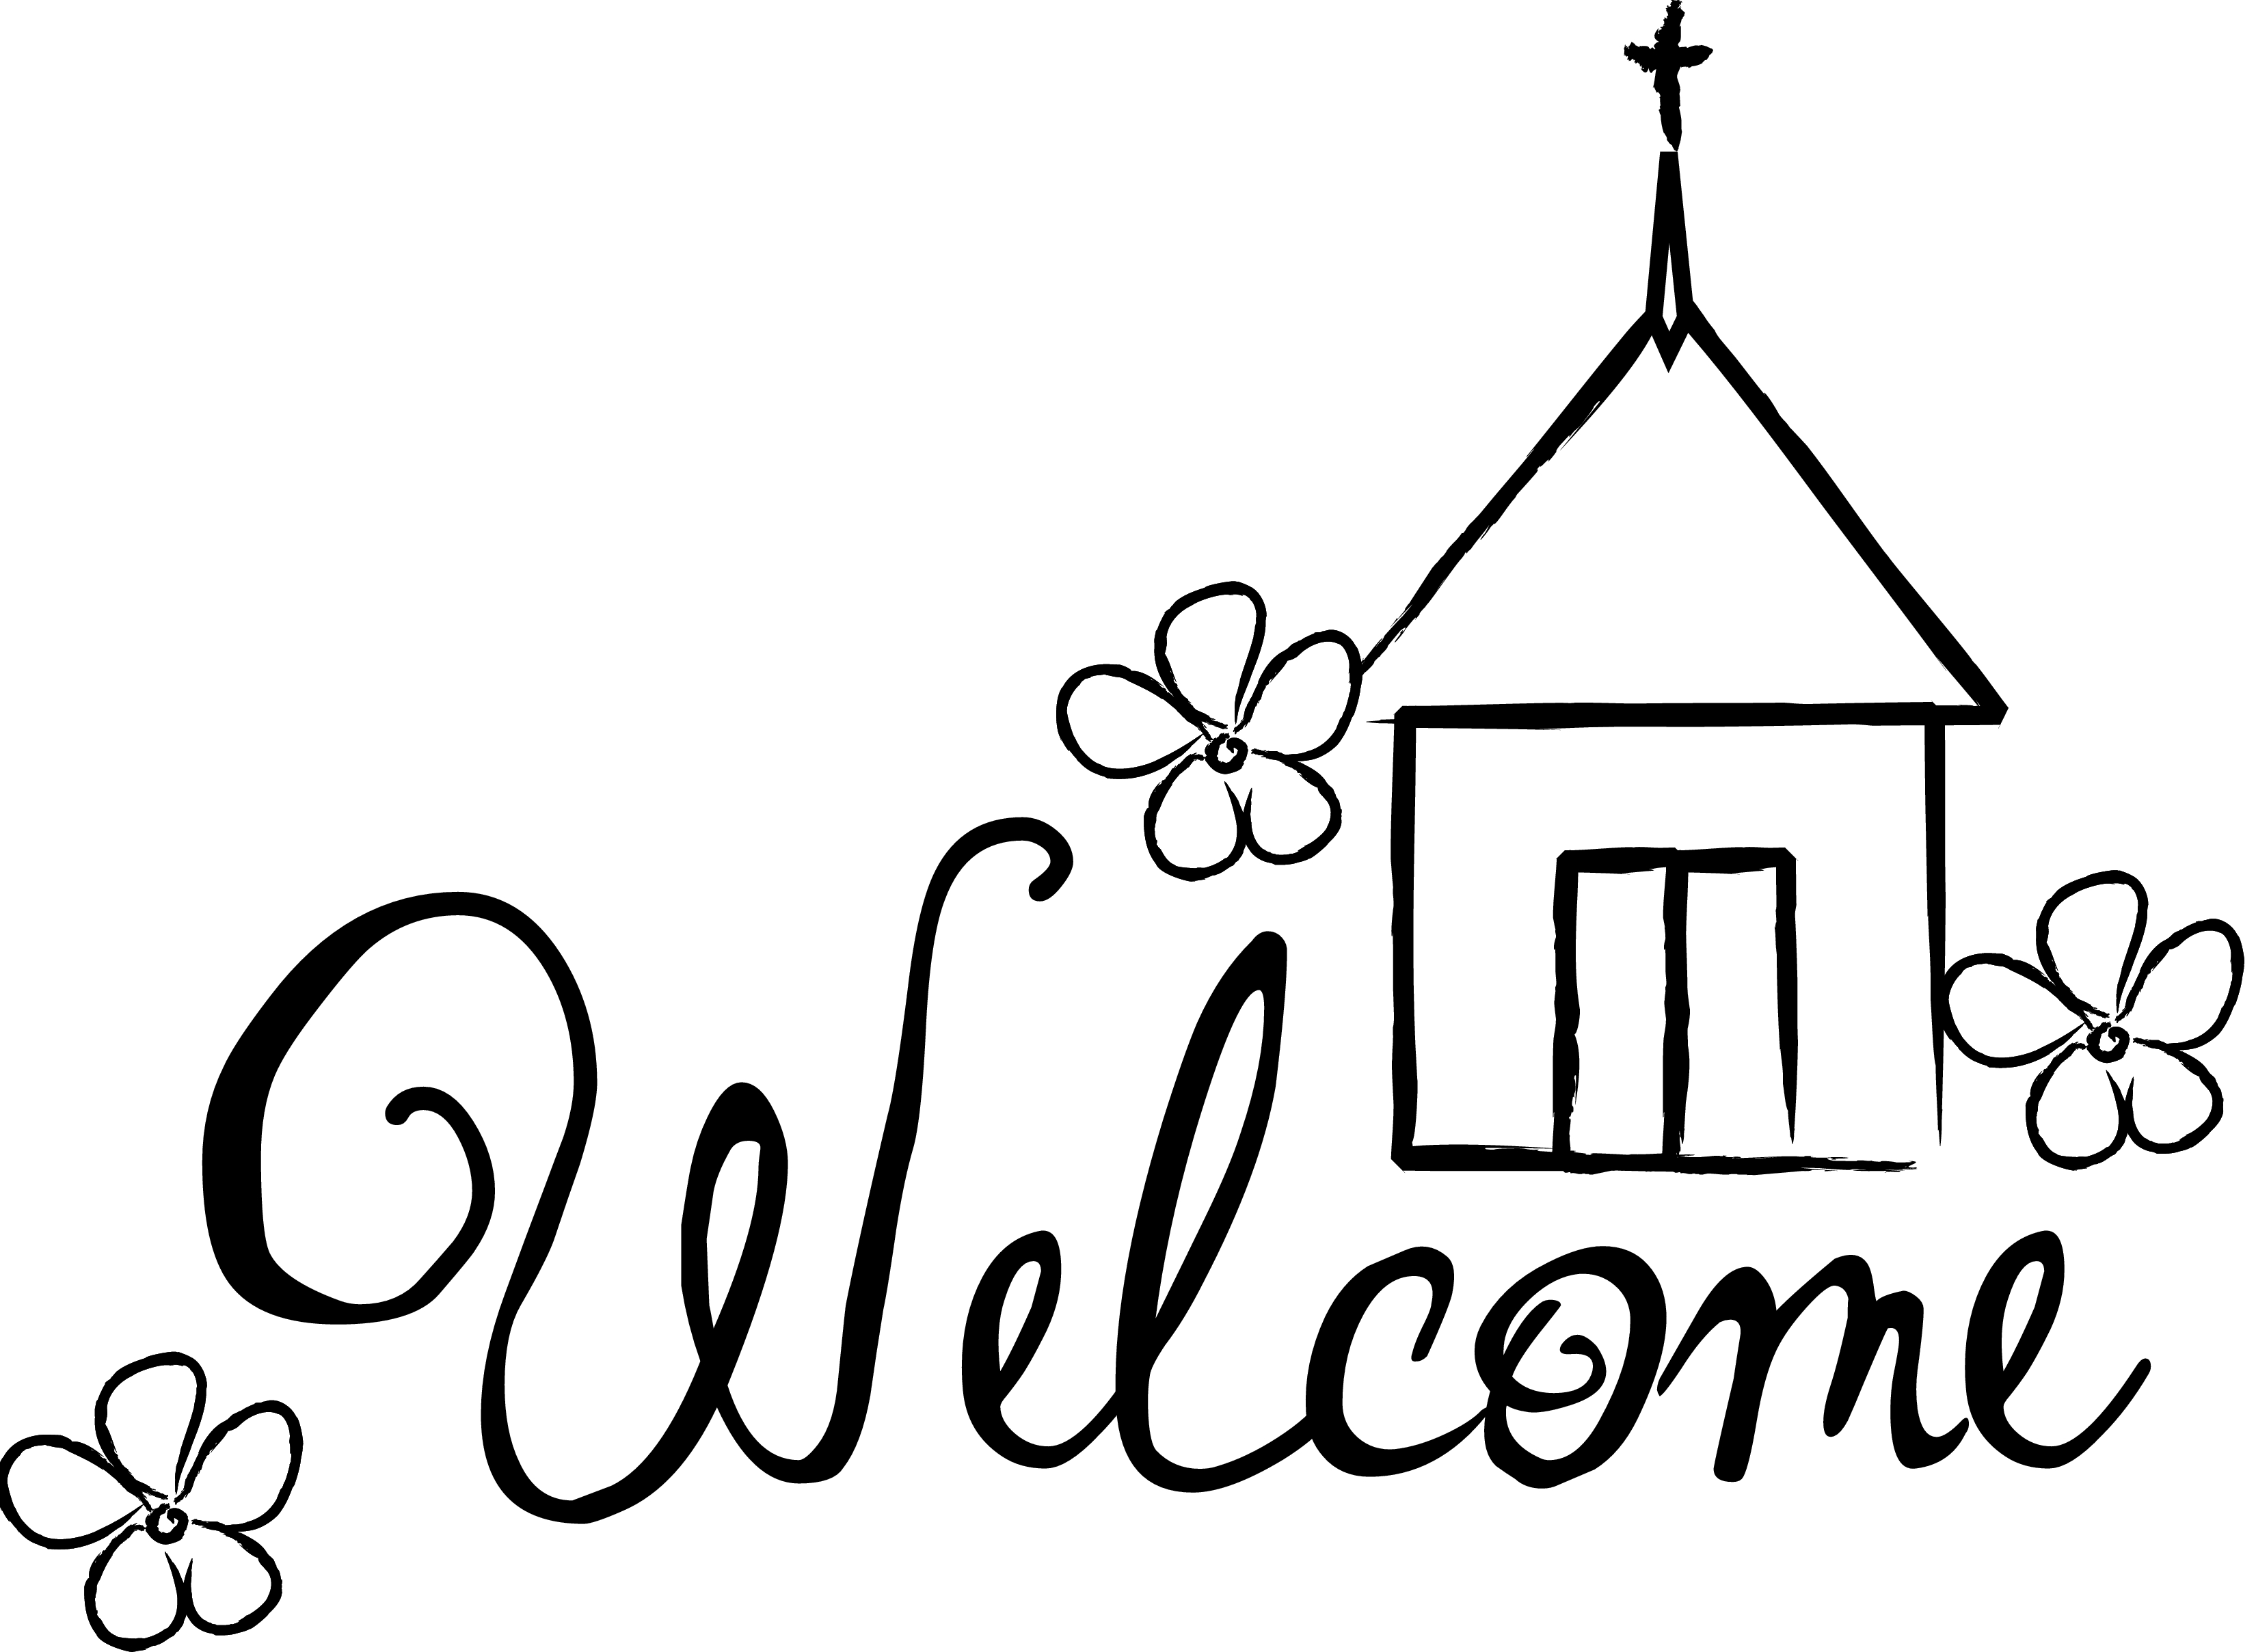 Free Church Welcome Cliparts, Download Free Clip Art, Free